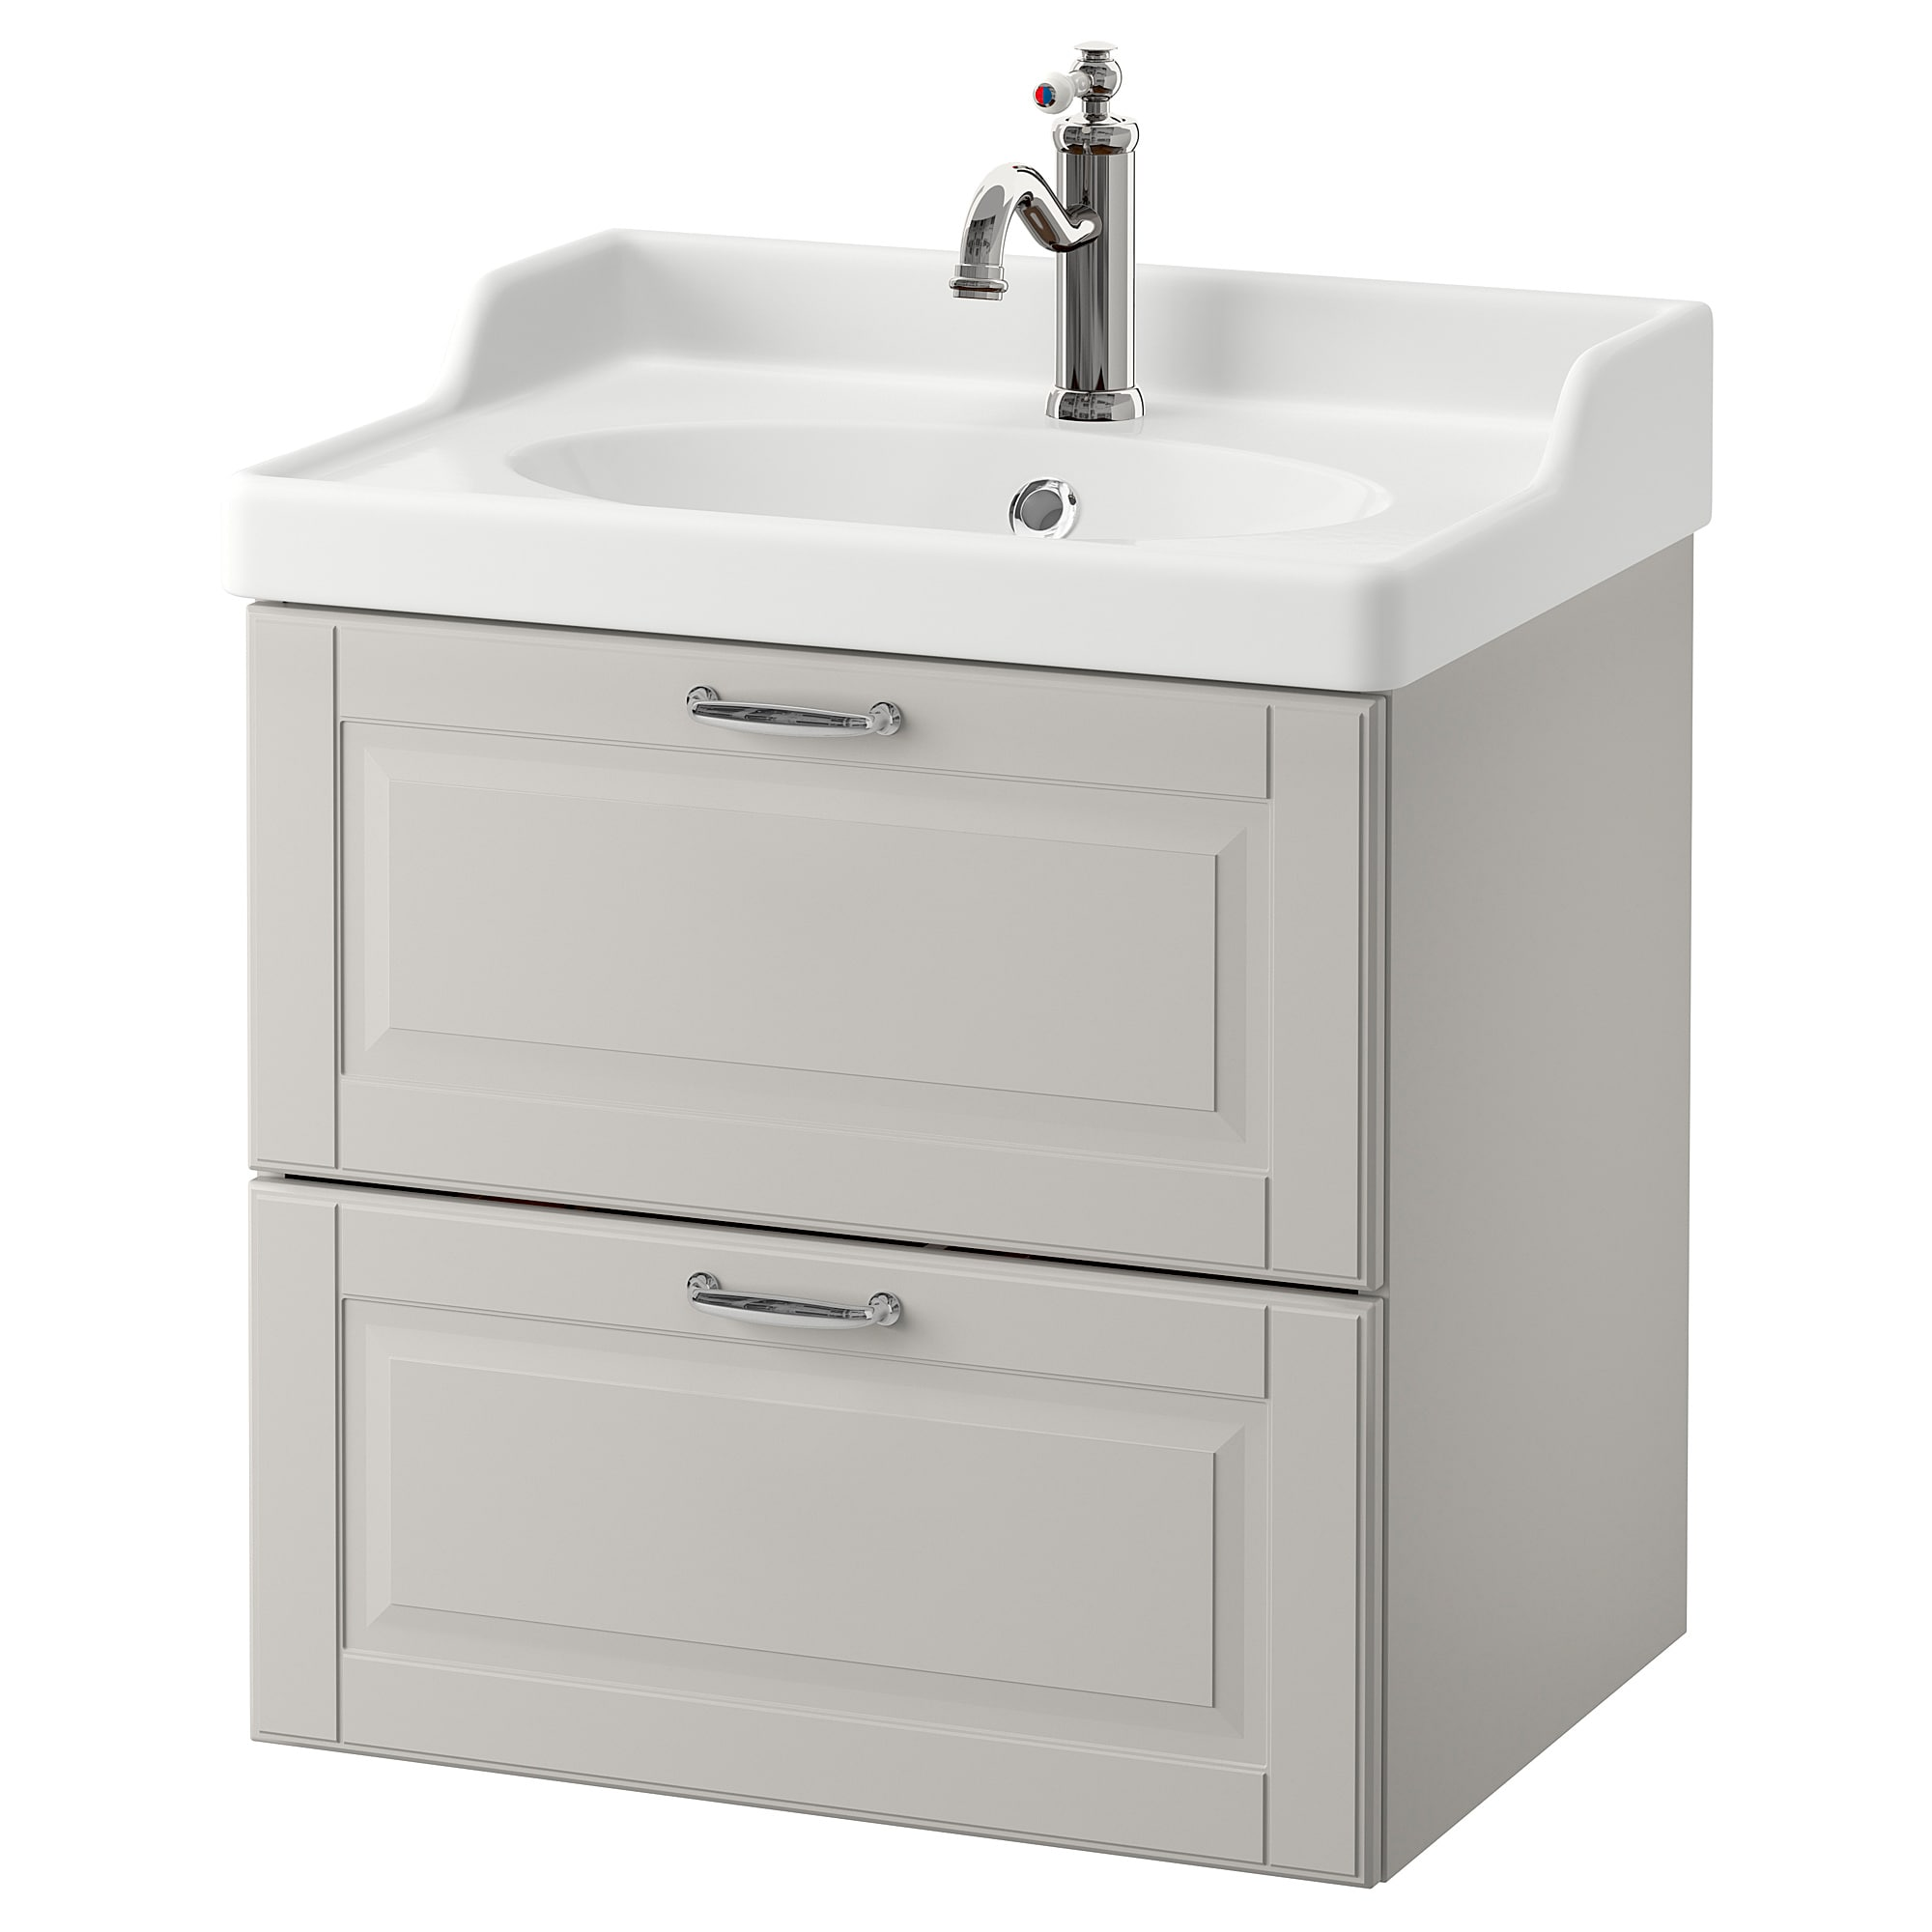 Us Furniture And Home Furnishings Home Depot Bathroom Vanity Bathroom Vanity Cabinets Bathroom Vanity Tops